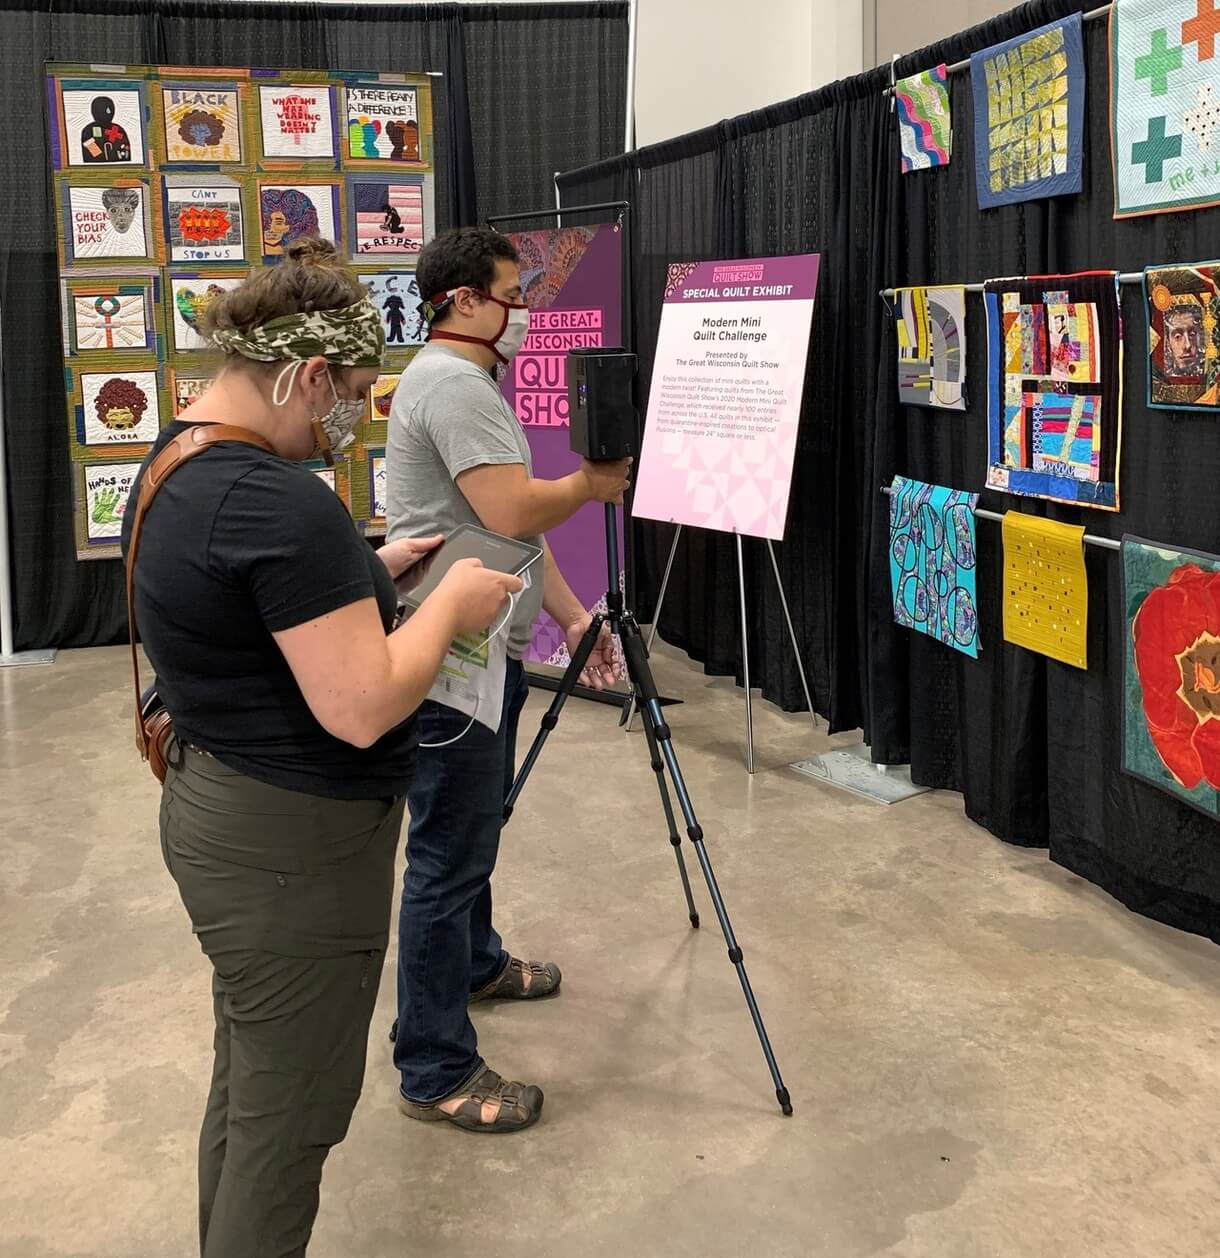 The Great Wisconsin Quilt Show Quilt Exhibits September 10-12, 2020 at QuiltShow.com